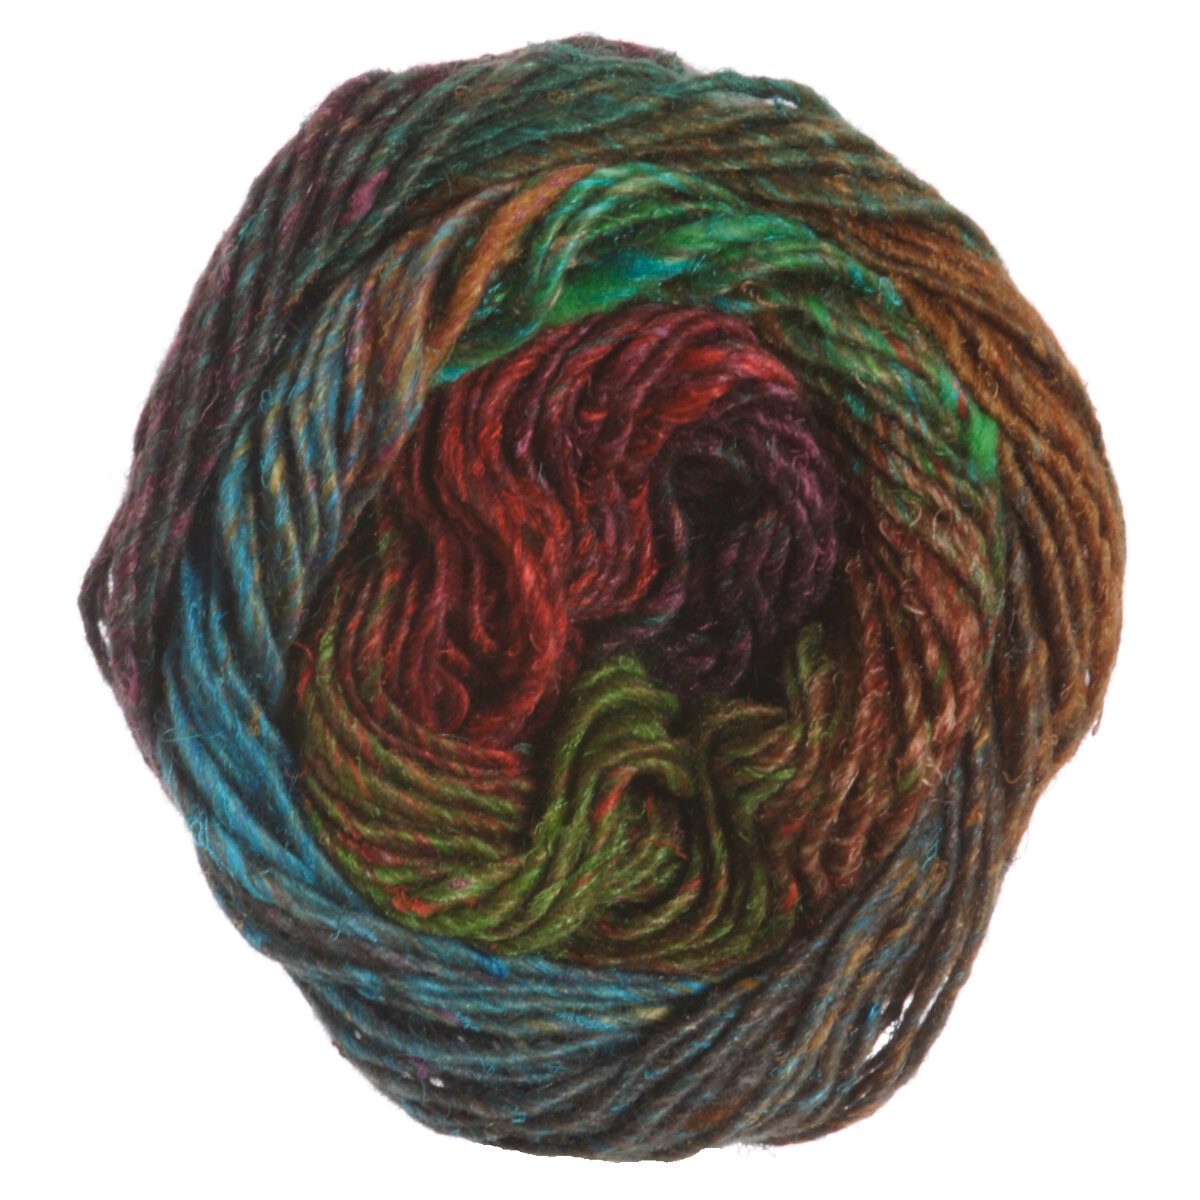 Noro Silk Garden Yarn - 381 Rust, Turquoise at Jimmy Beans Wool